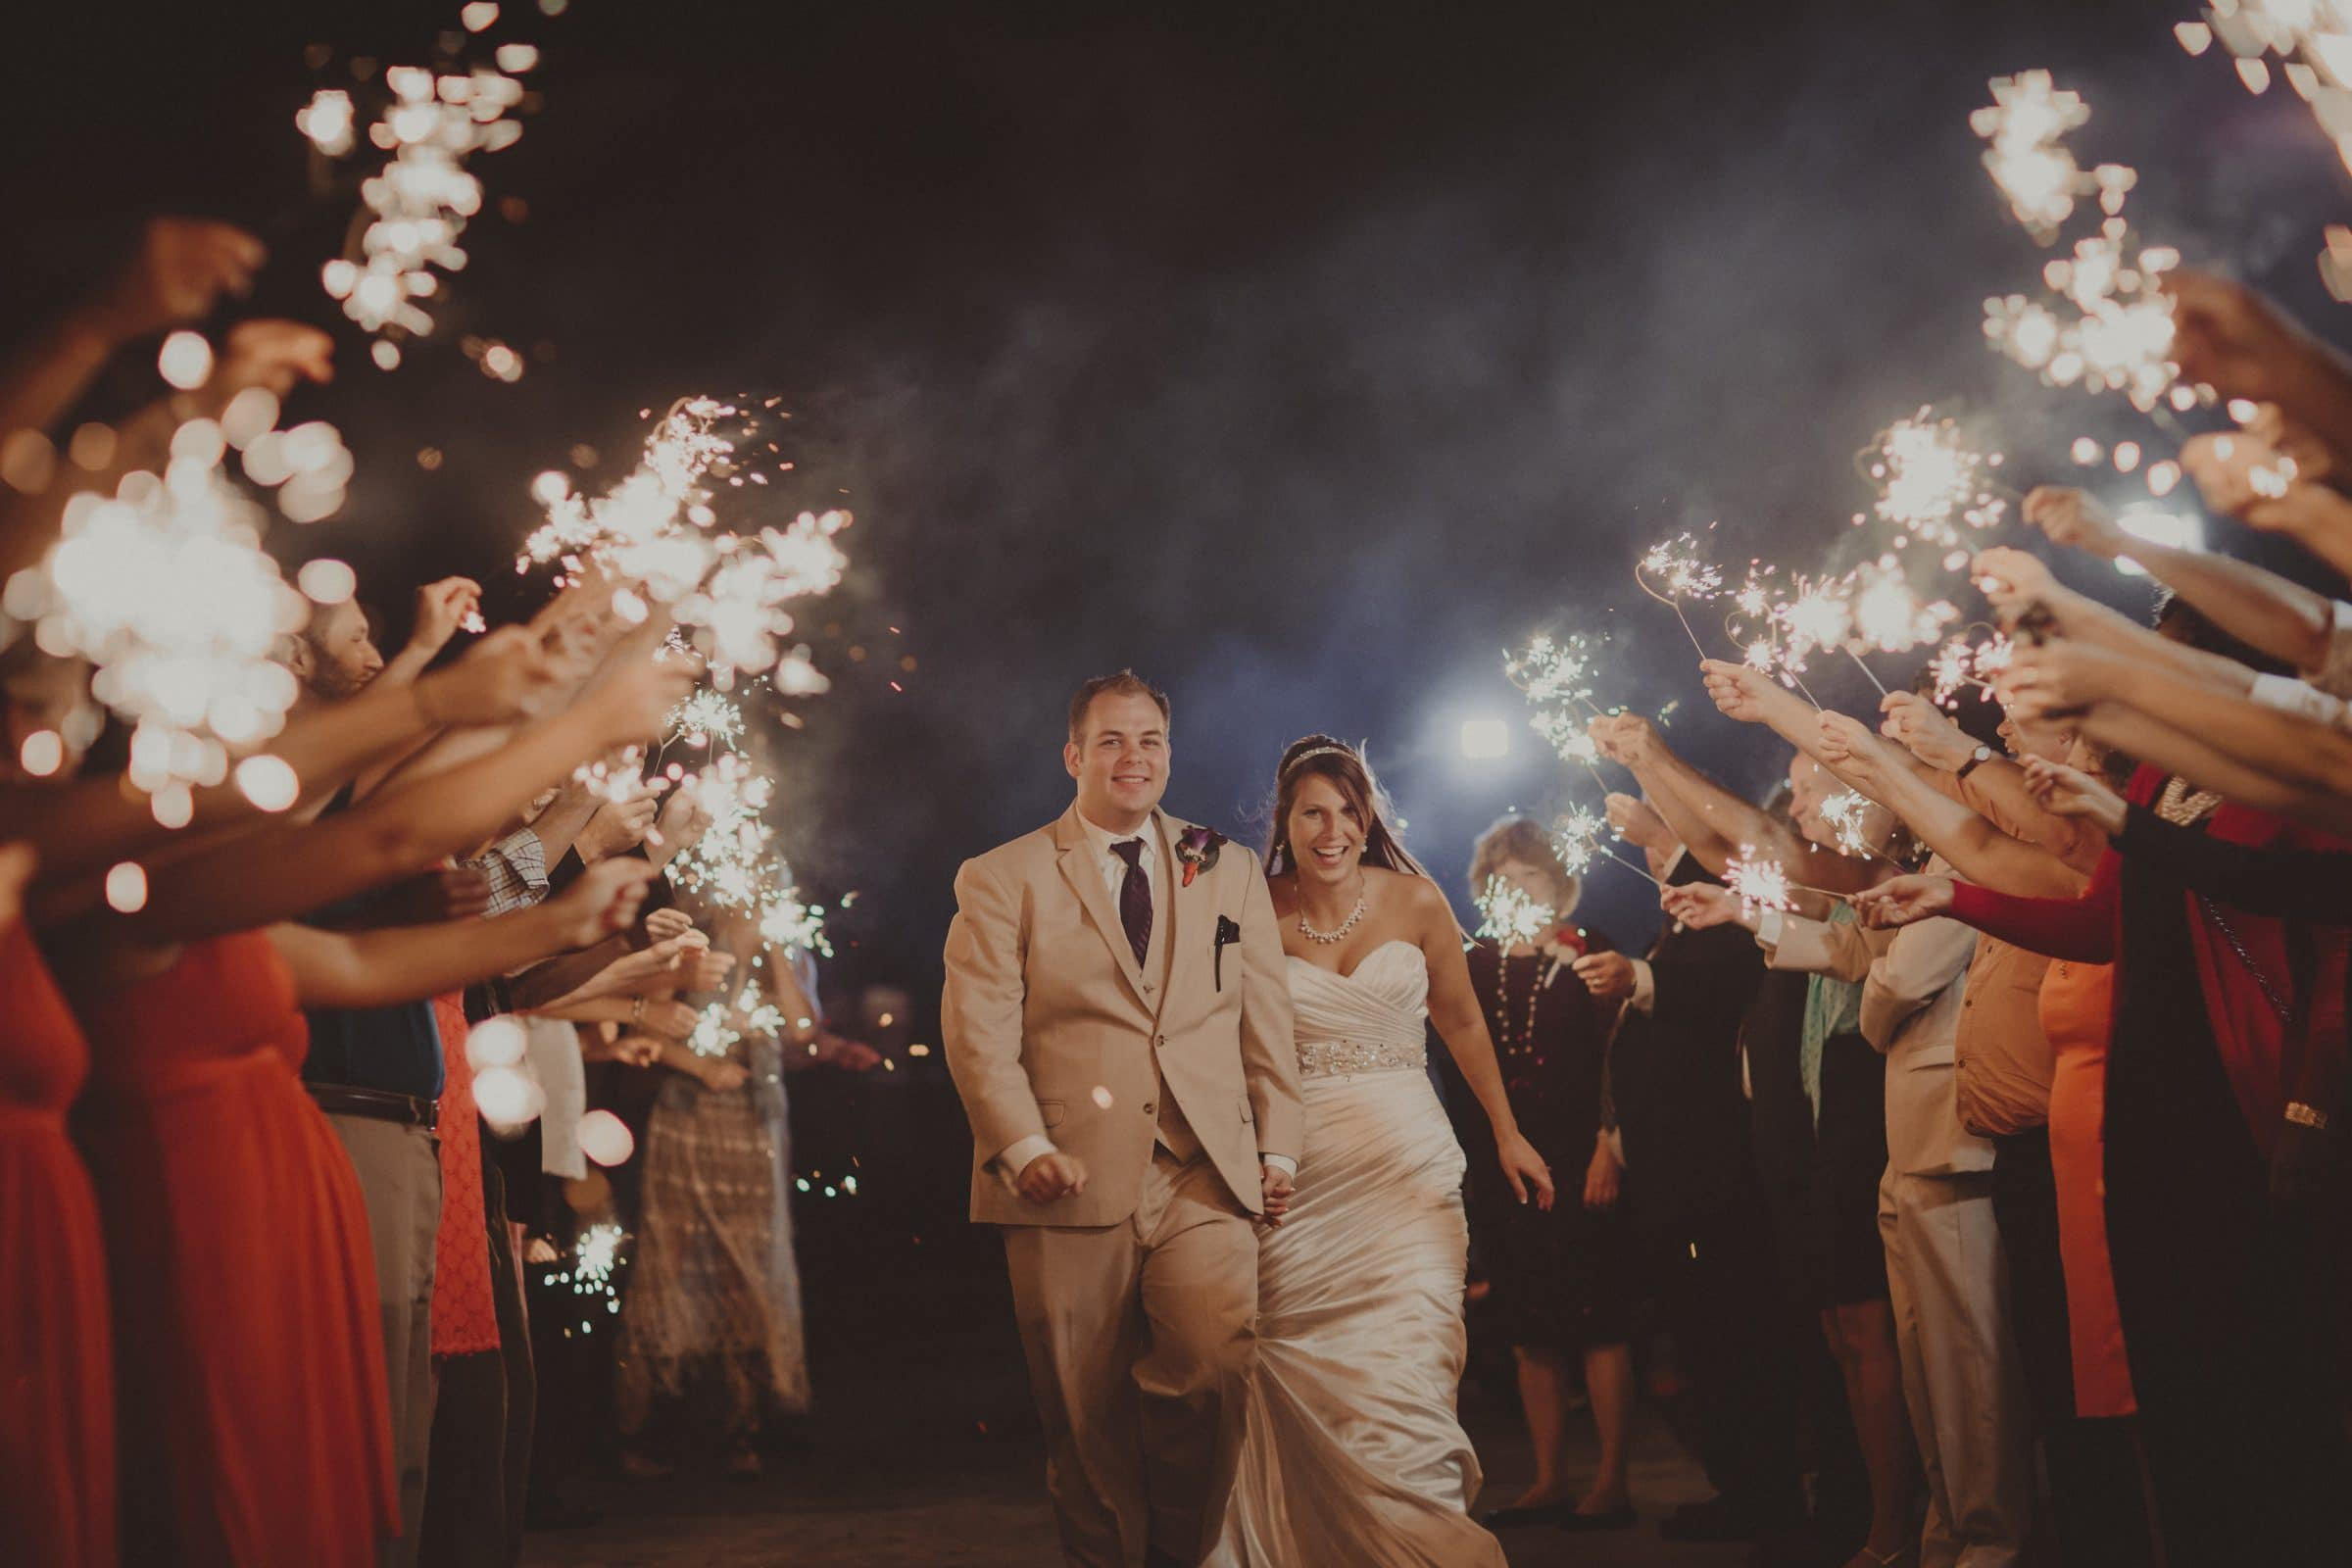 The Gaultneys during their sparkler sendoff at Mission Inn